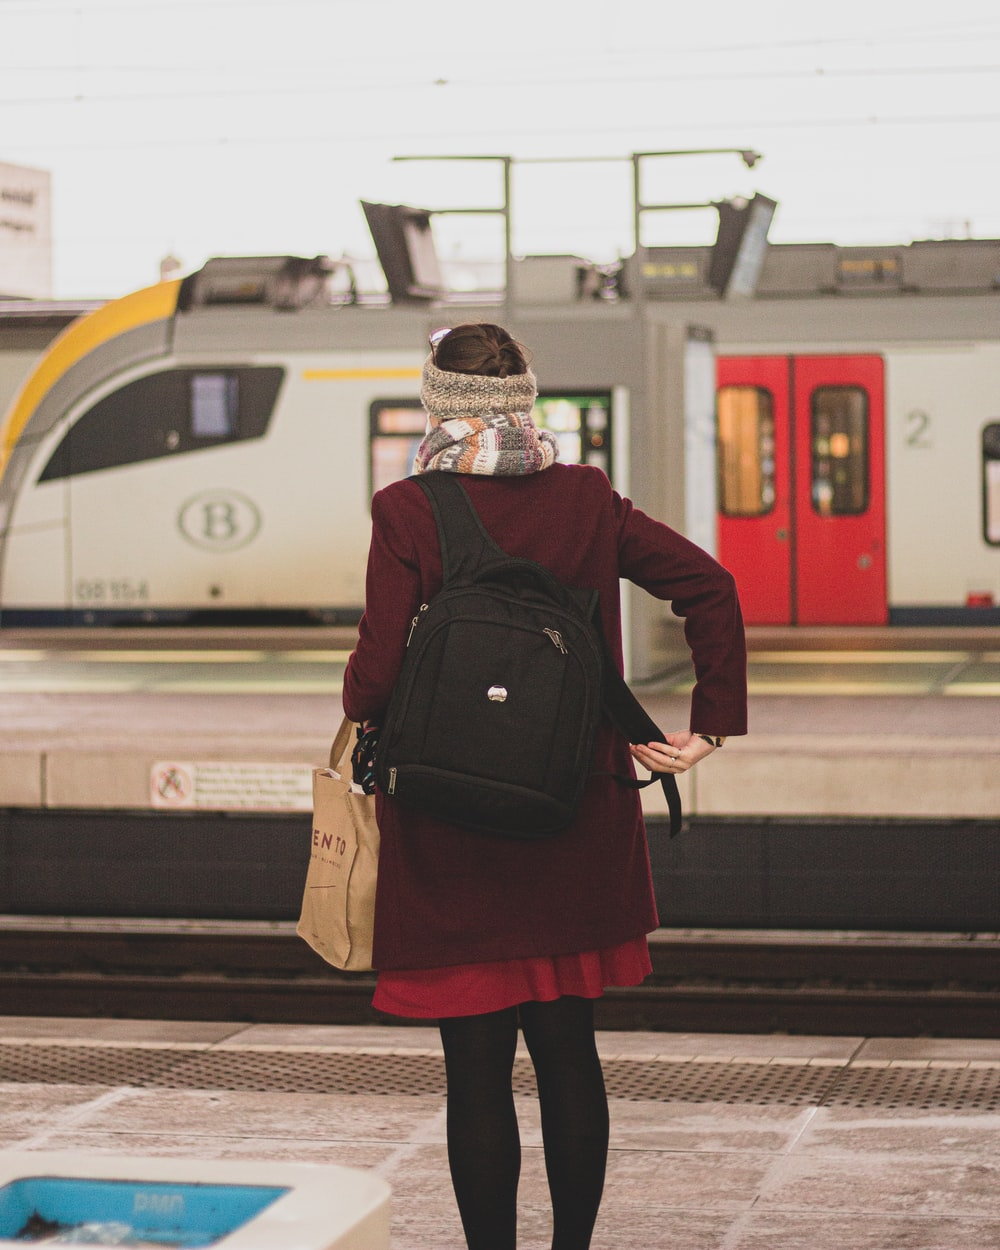 woman in black and red jacket standing on train station